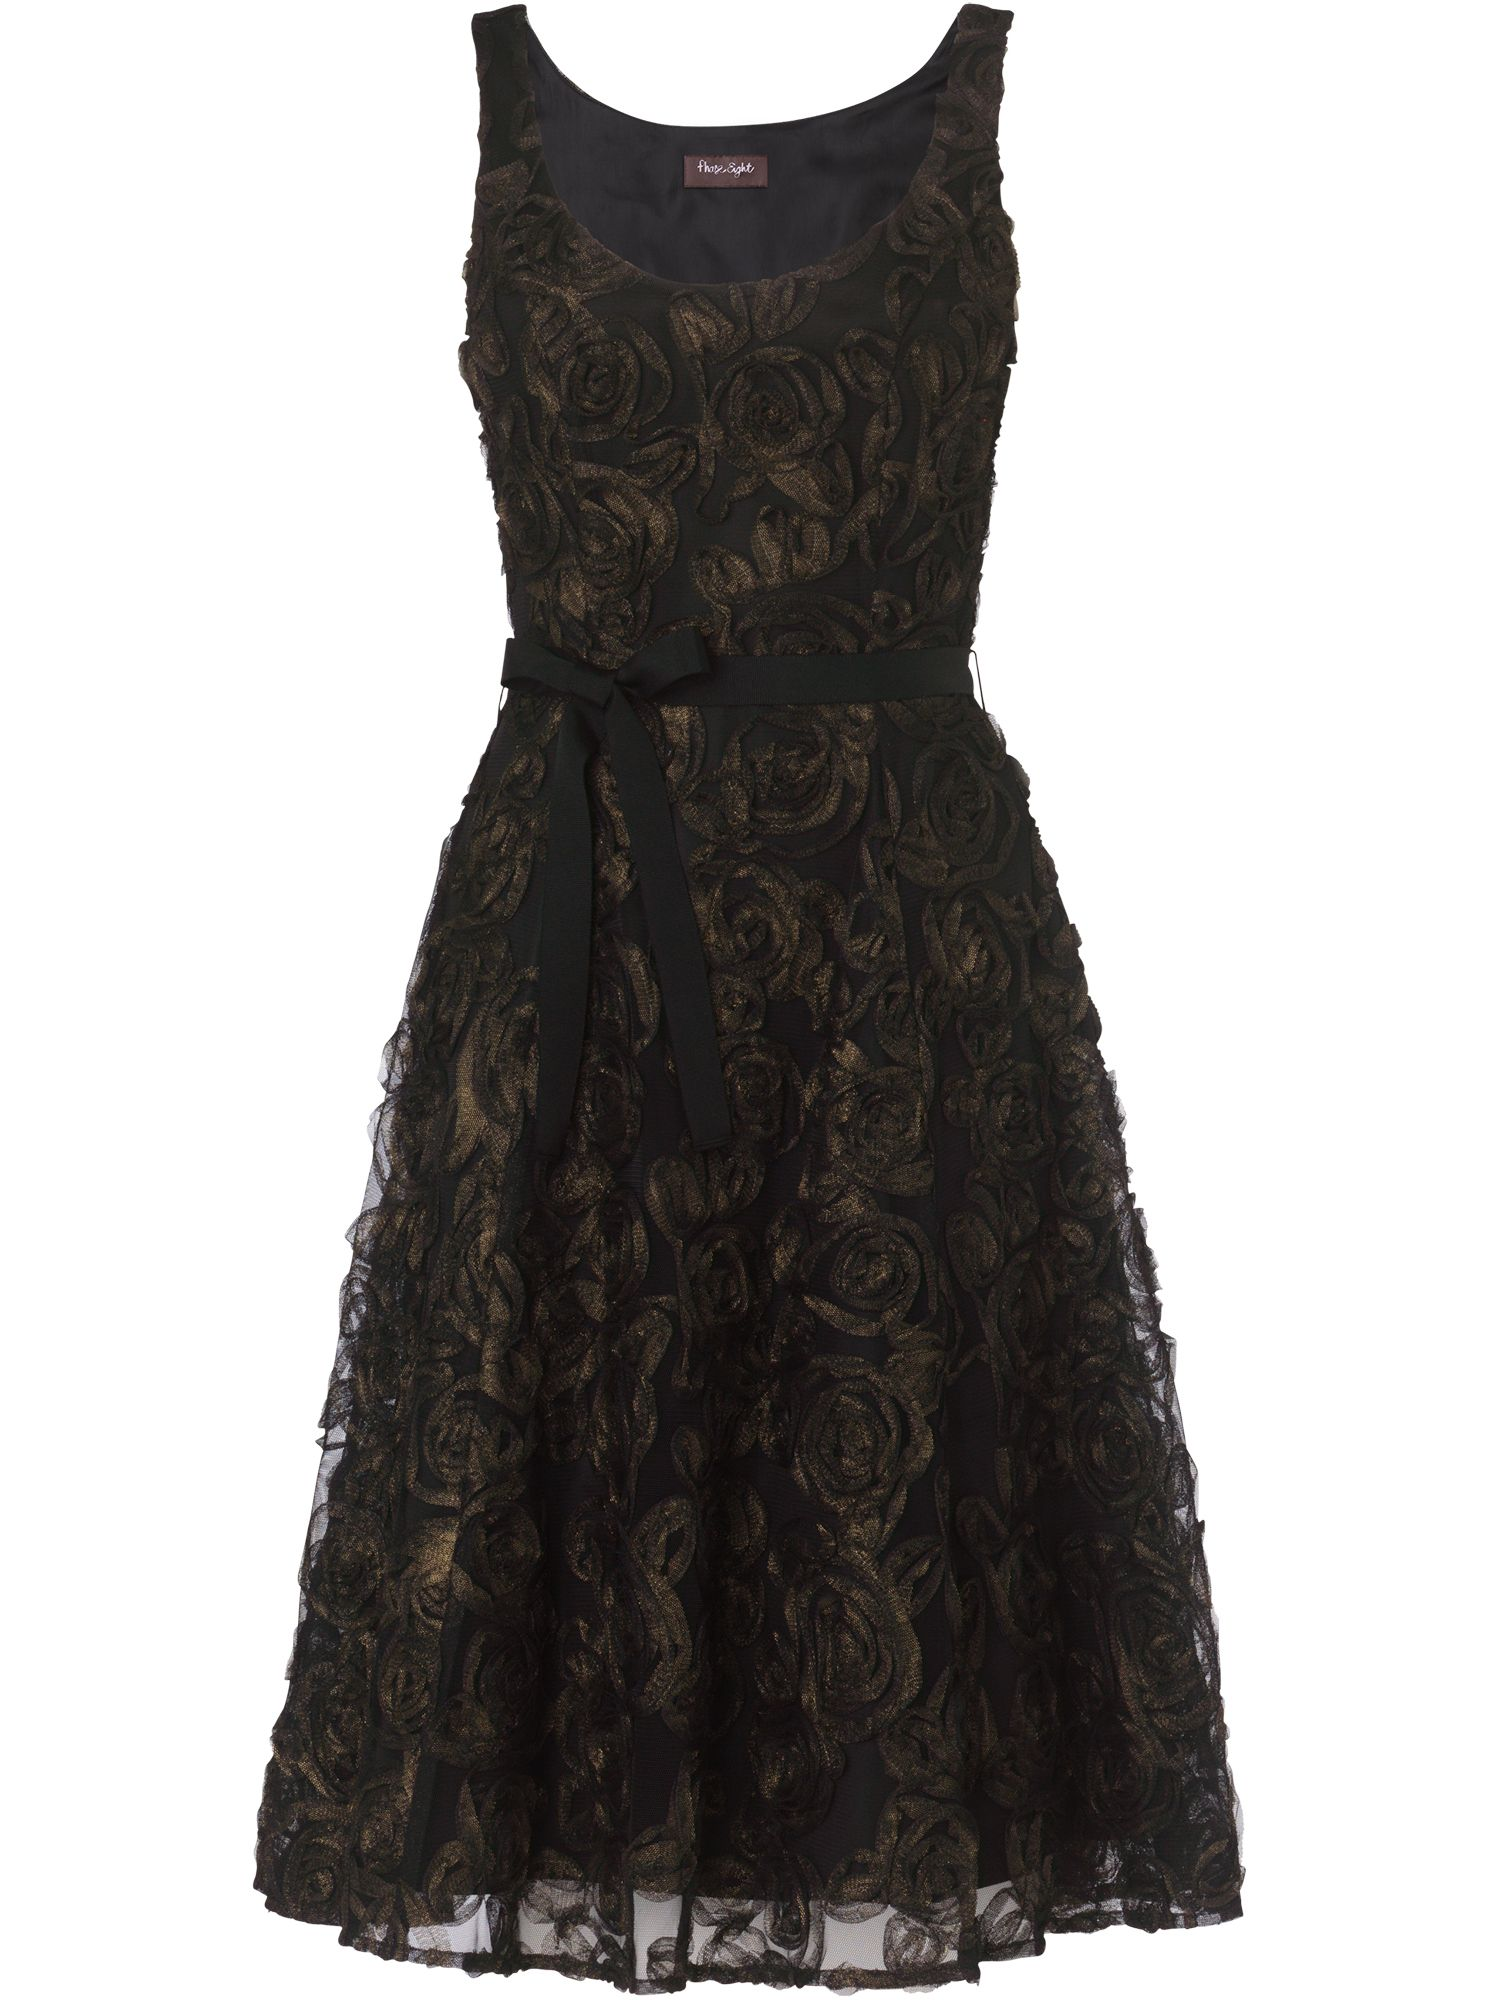 Phillipa tapework dress